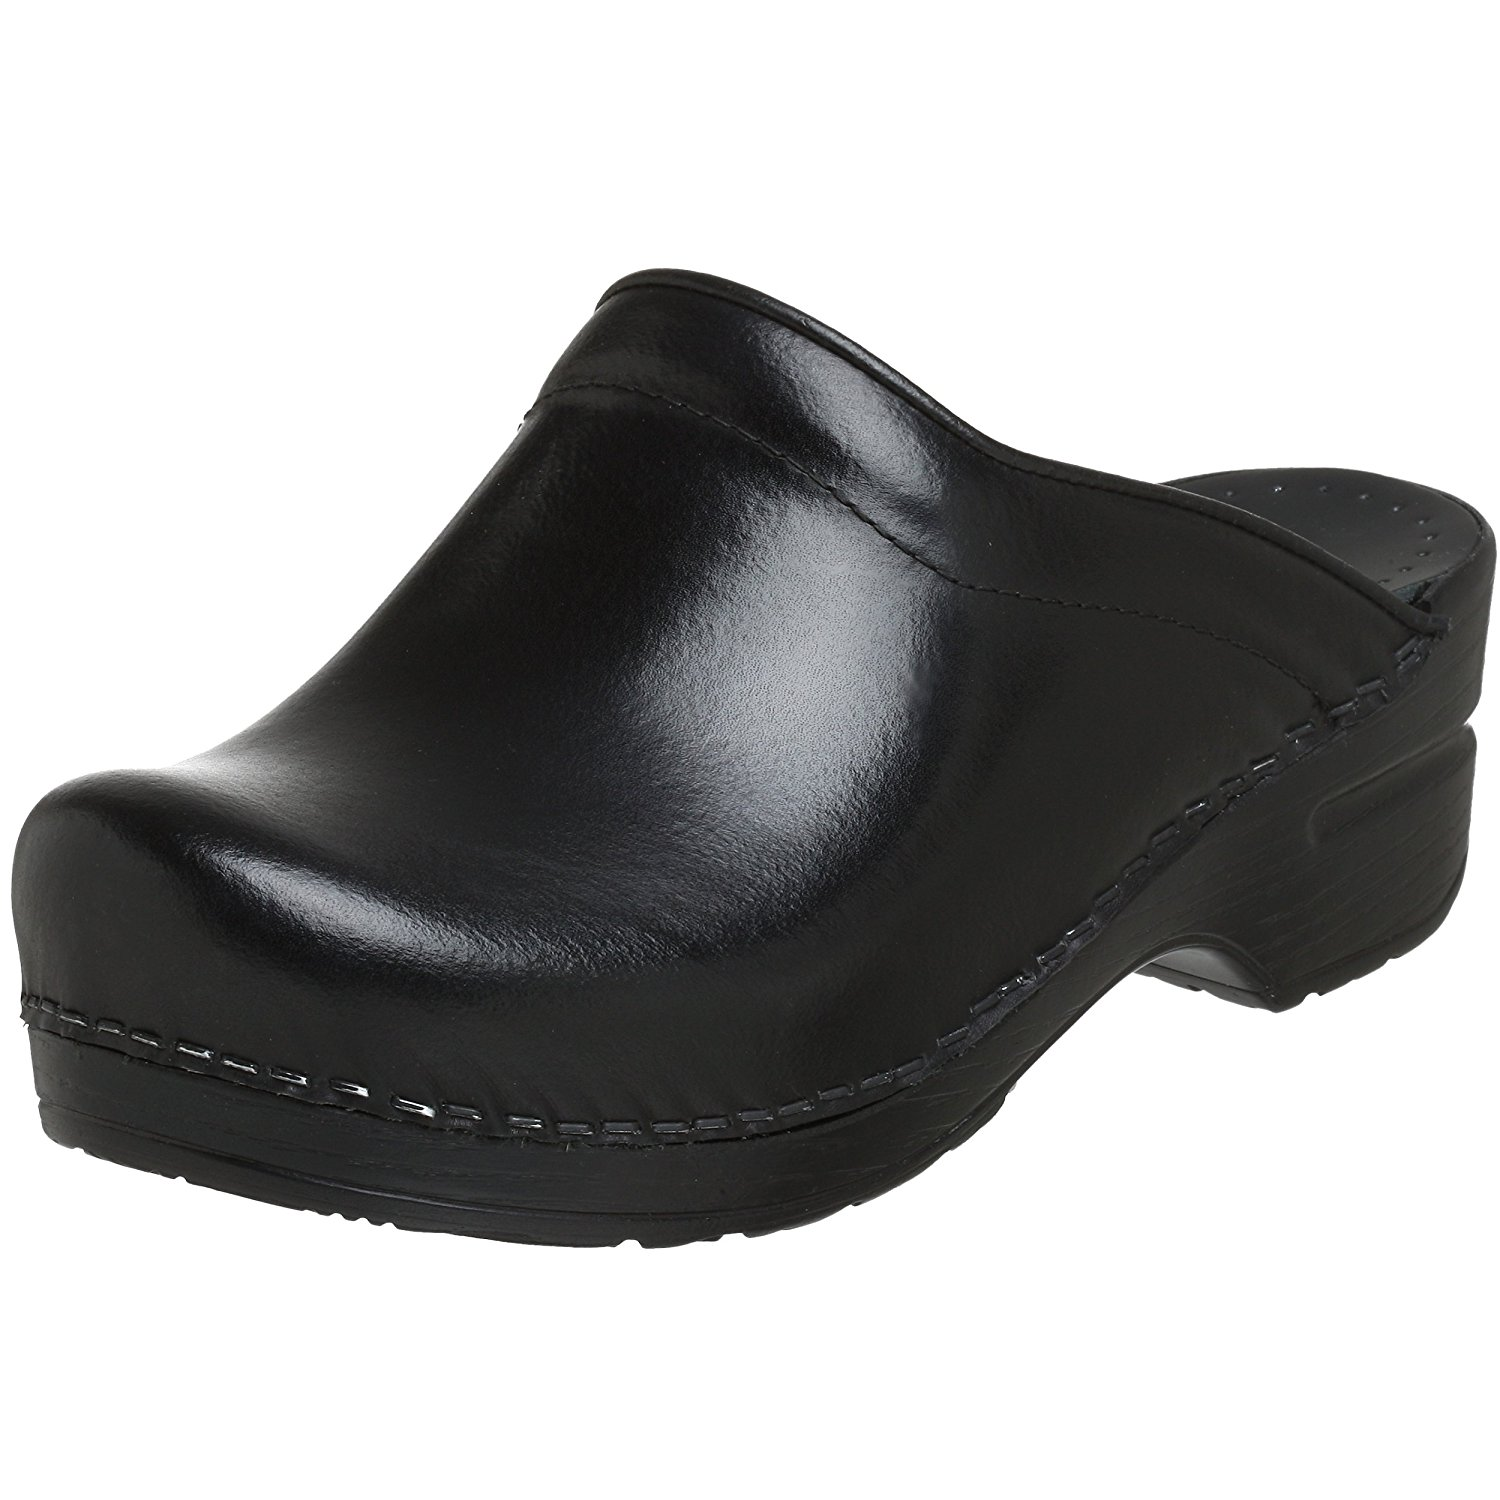 Dansko Women's Sonja Cabrio Leather Clog, Black, 38 EU/7.5-8 B(M) US